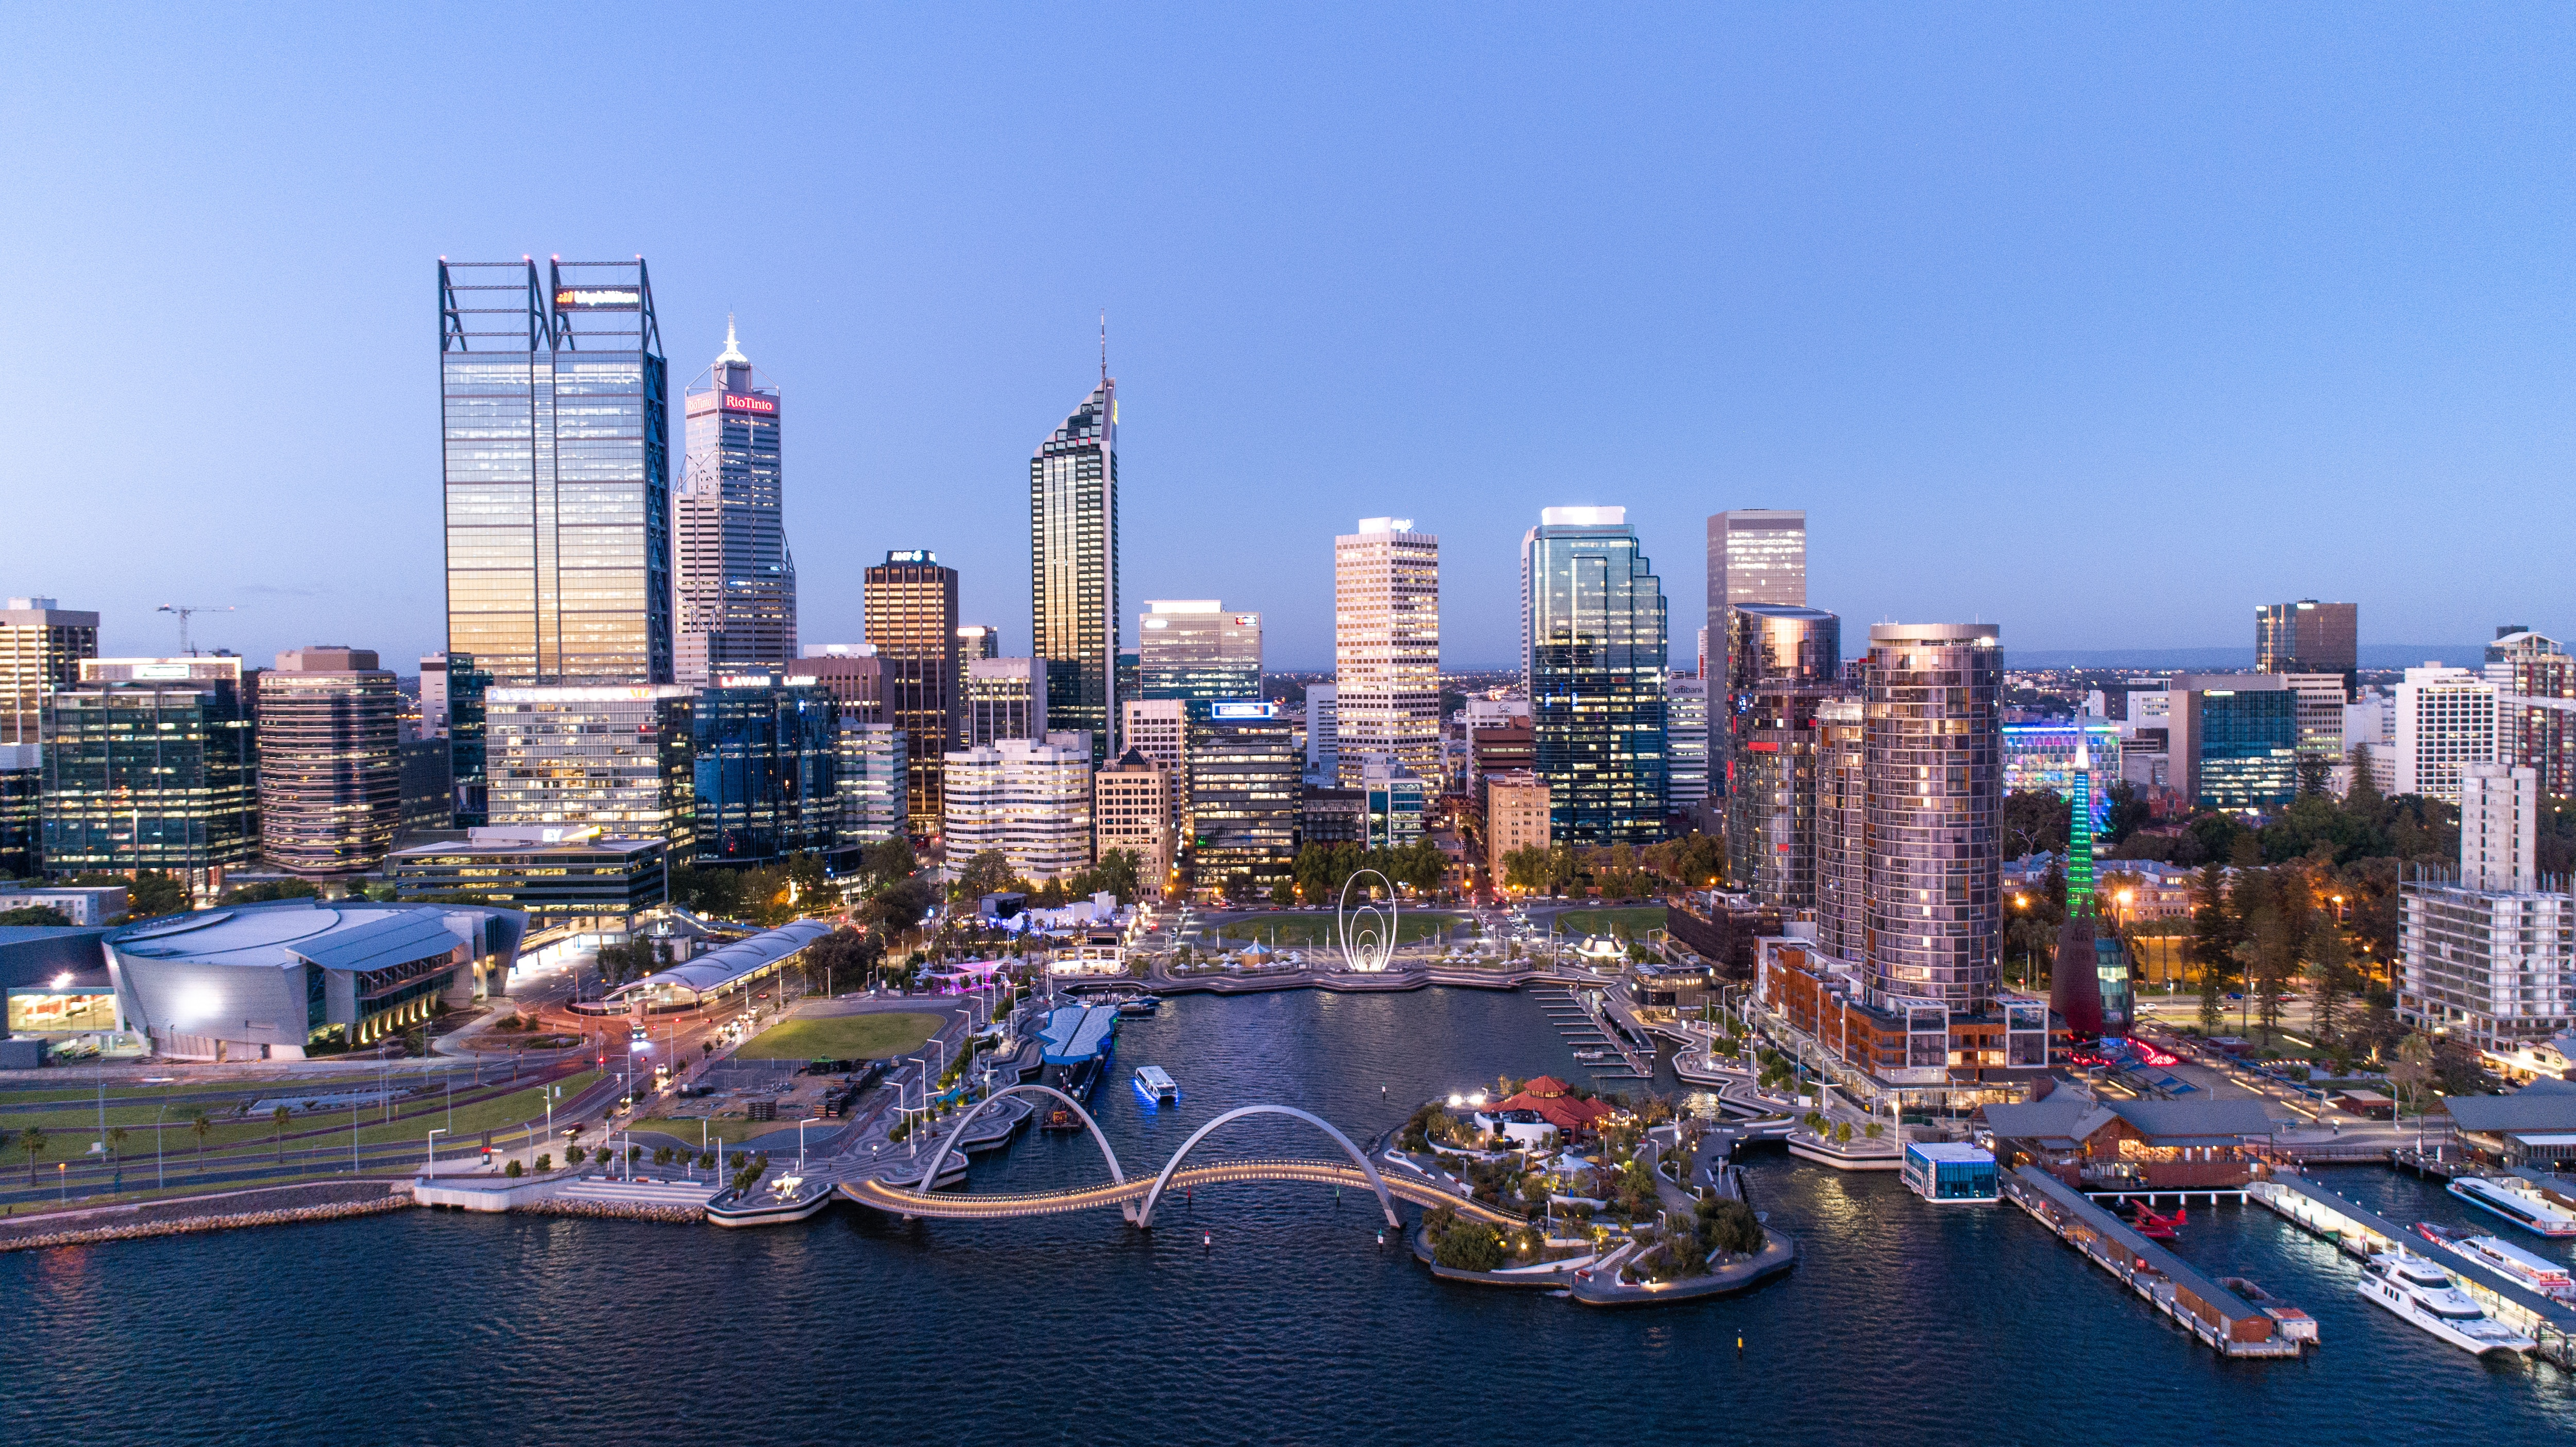 Perth's Hollywood named as a marketing ploy